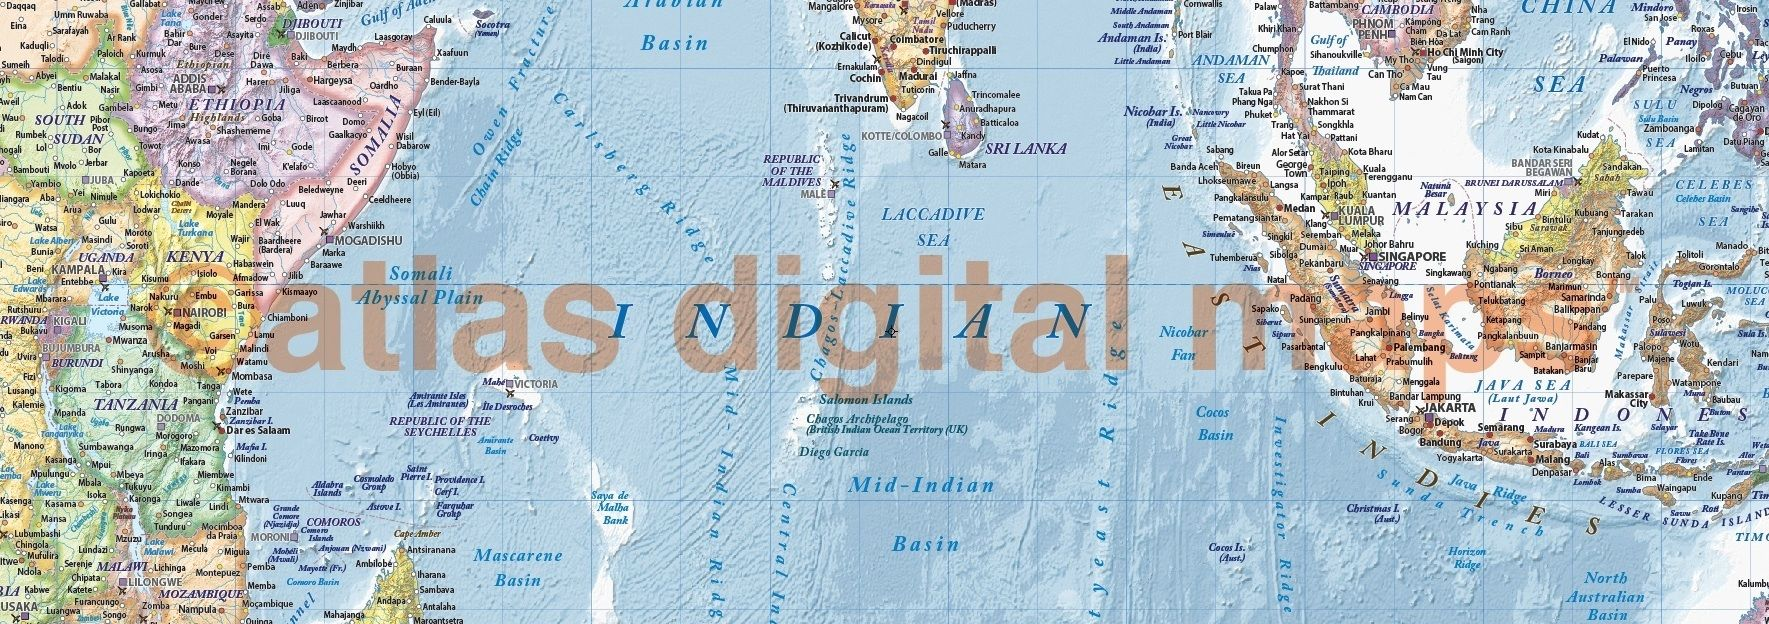 Political and ocean relief map of East Africa Malaysia Indonesia